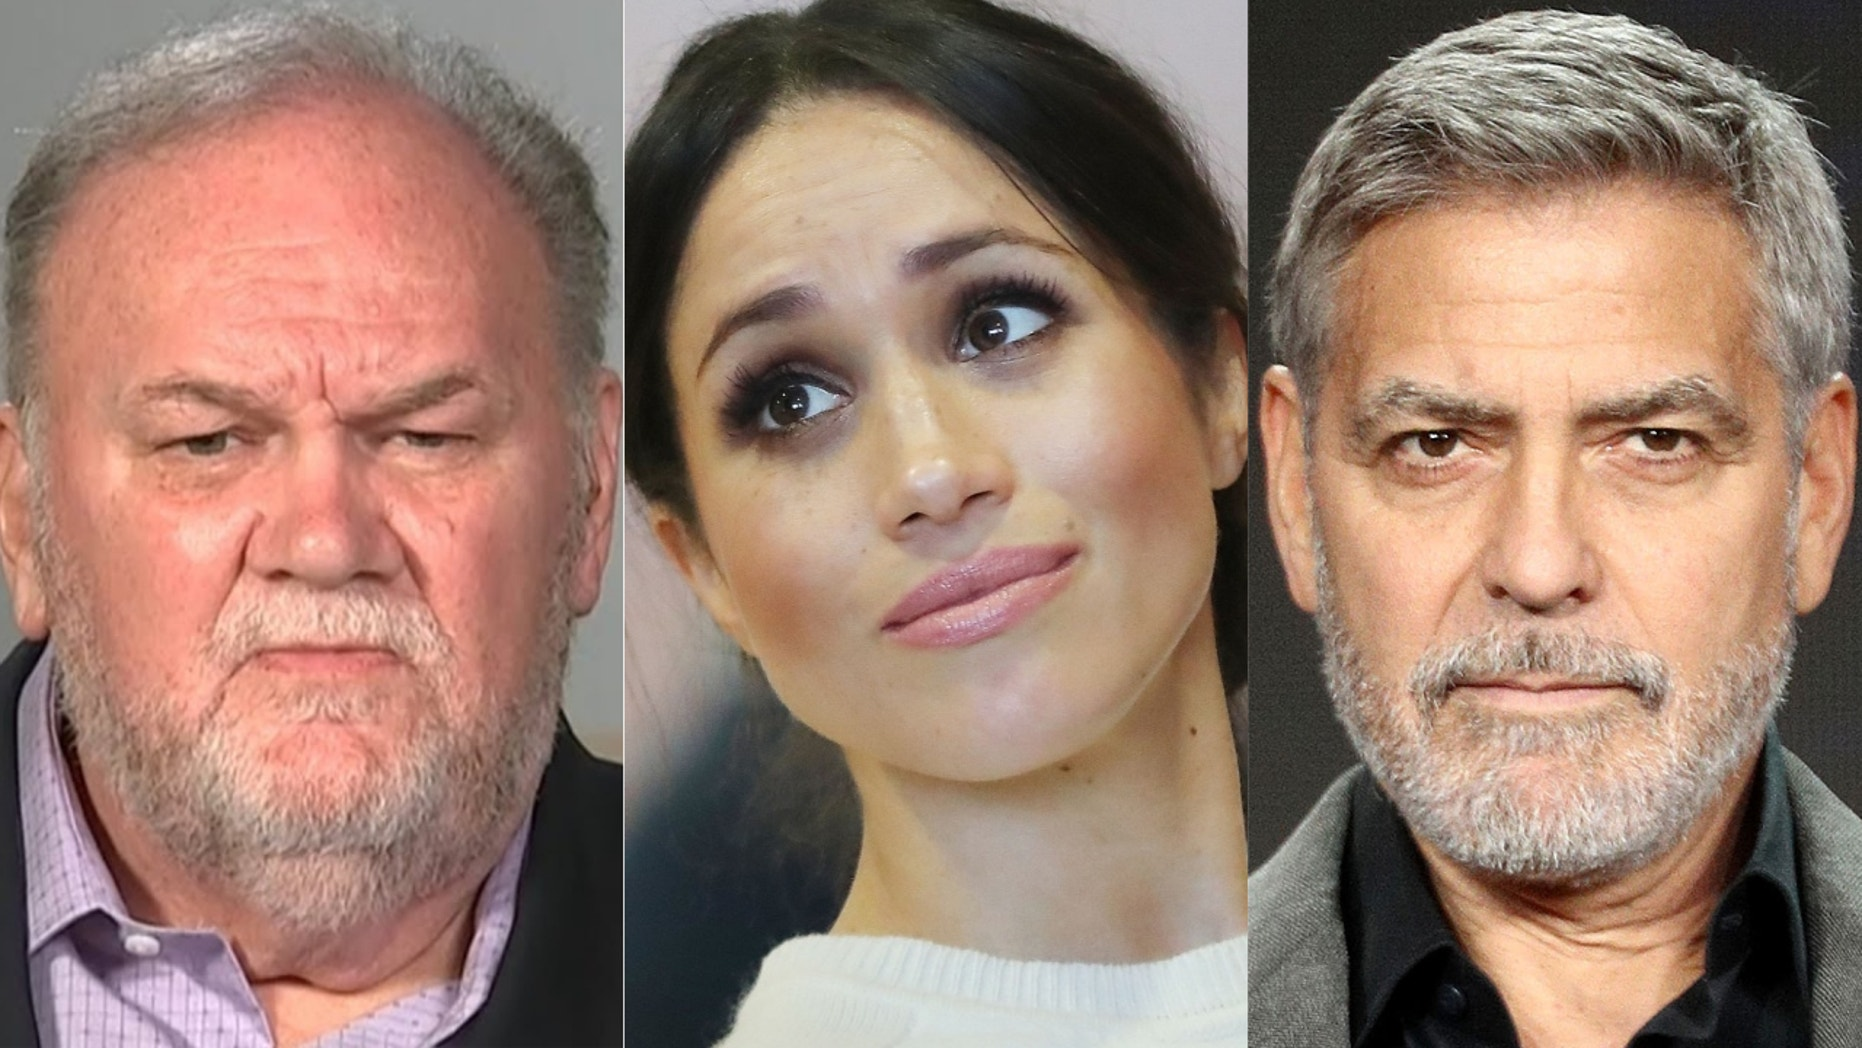 Thomas Markle, Meghan Markle and George Clooney